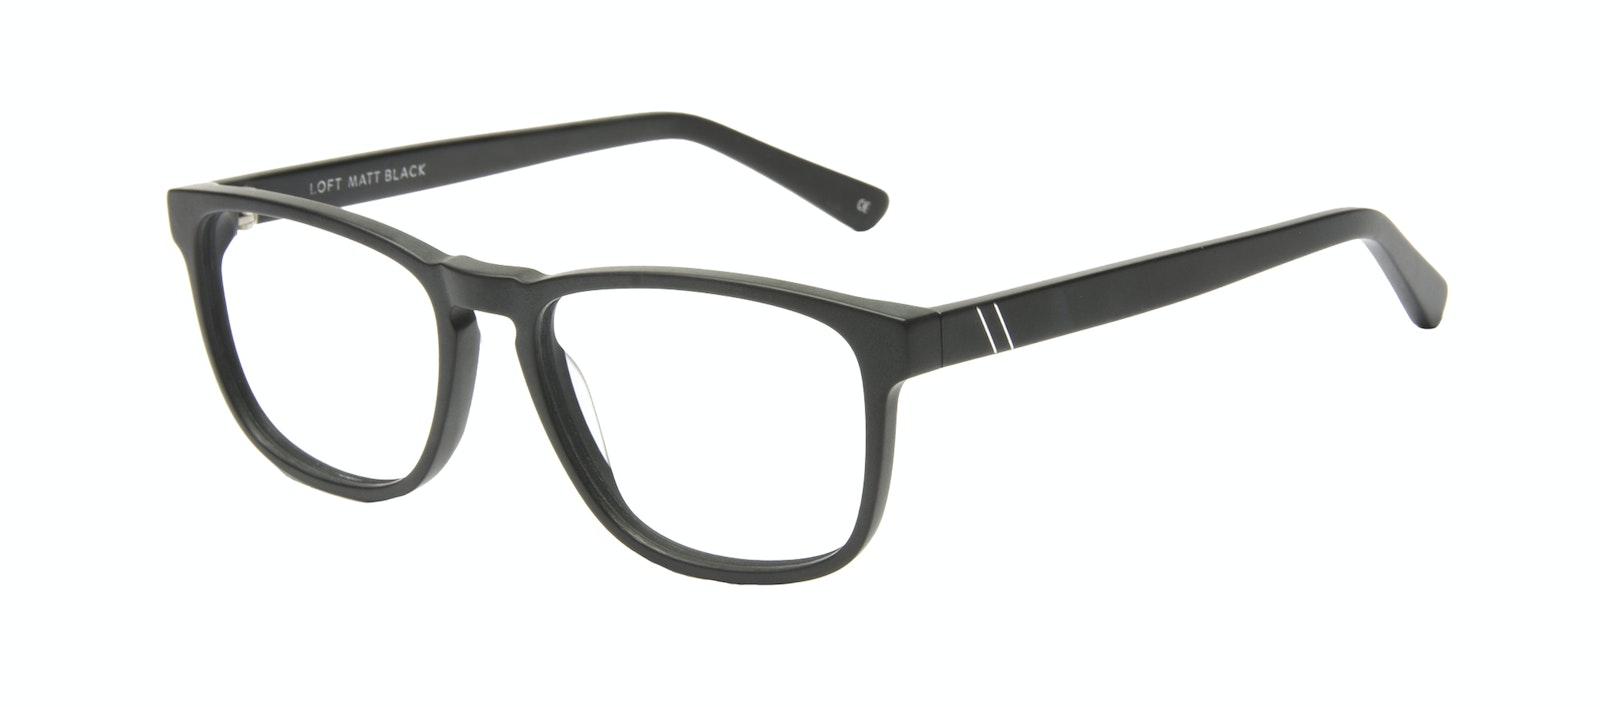 Affordable Fashion Glasses Rectangle Eyeglasses Men Loft Black Matte Tilt